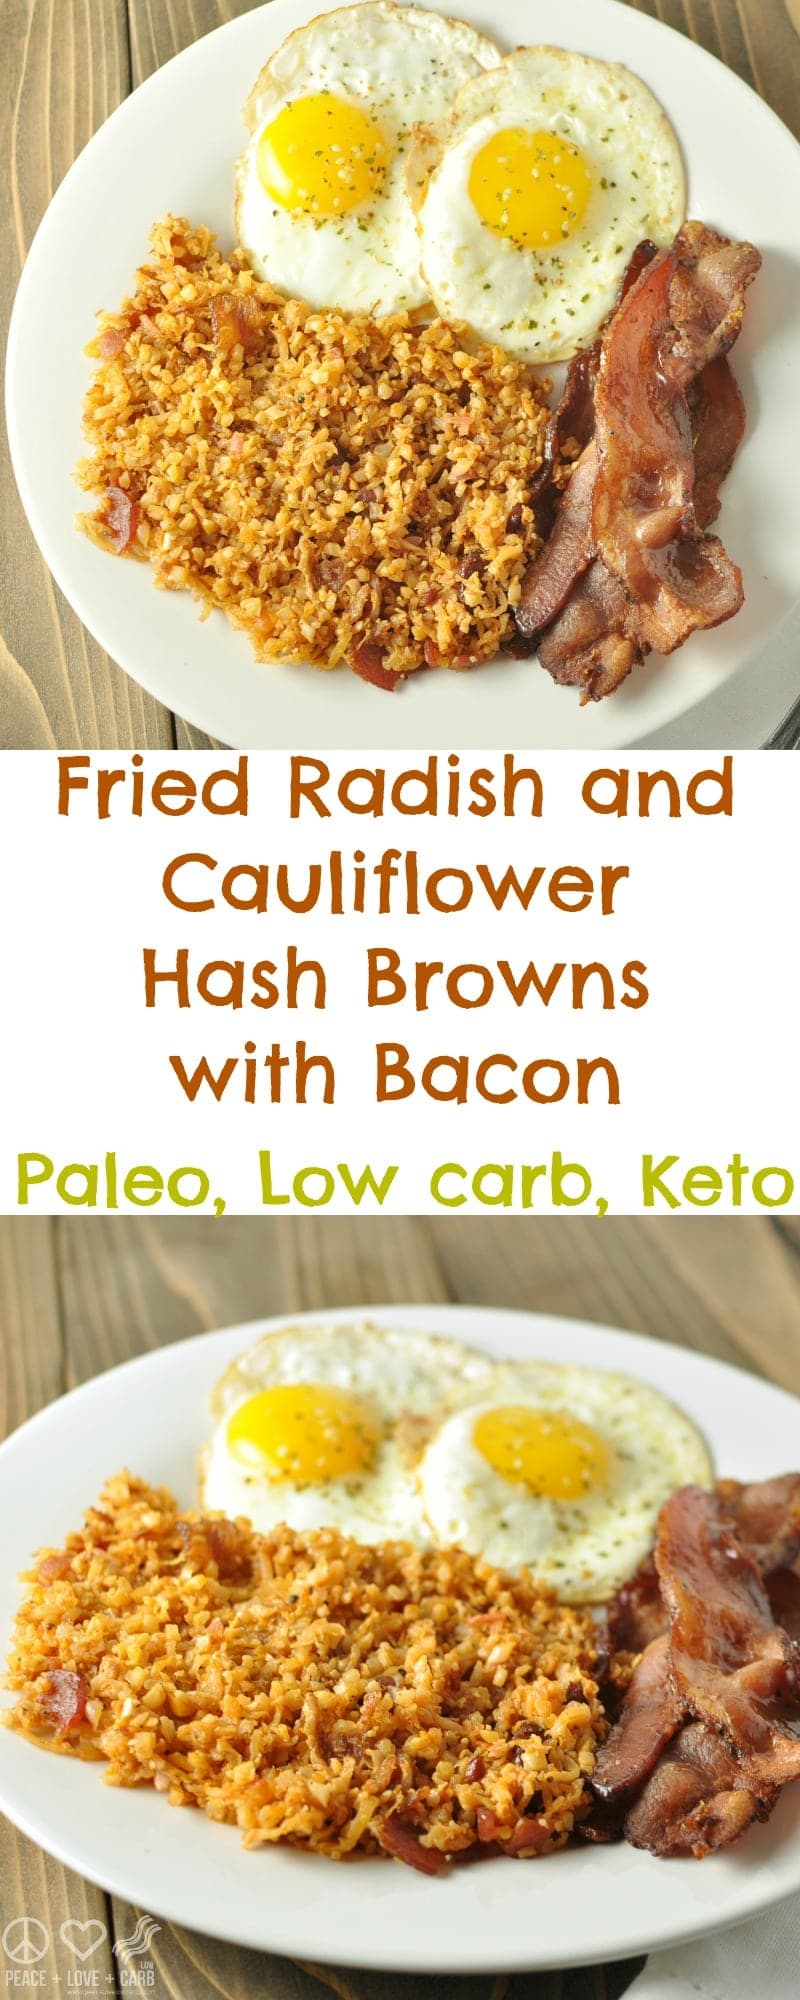 Fried Radish and Cauliflower Hash Browns with Bacon - Low Carb, Keto, Paleo